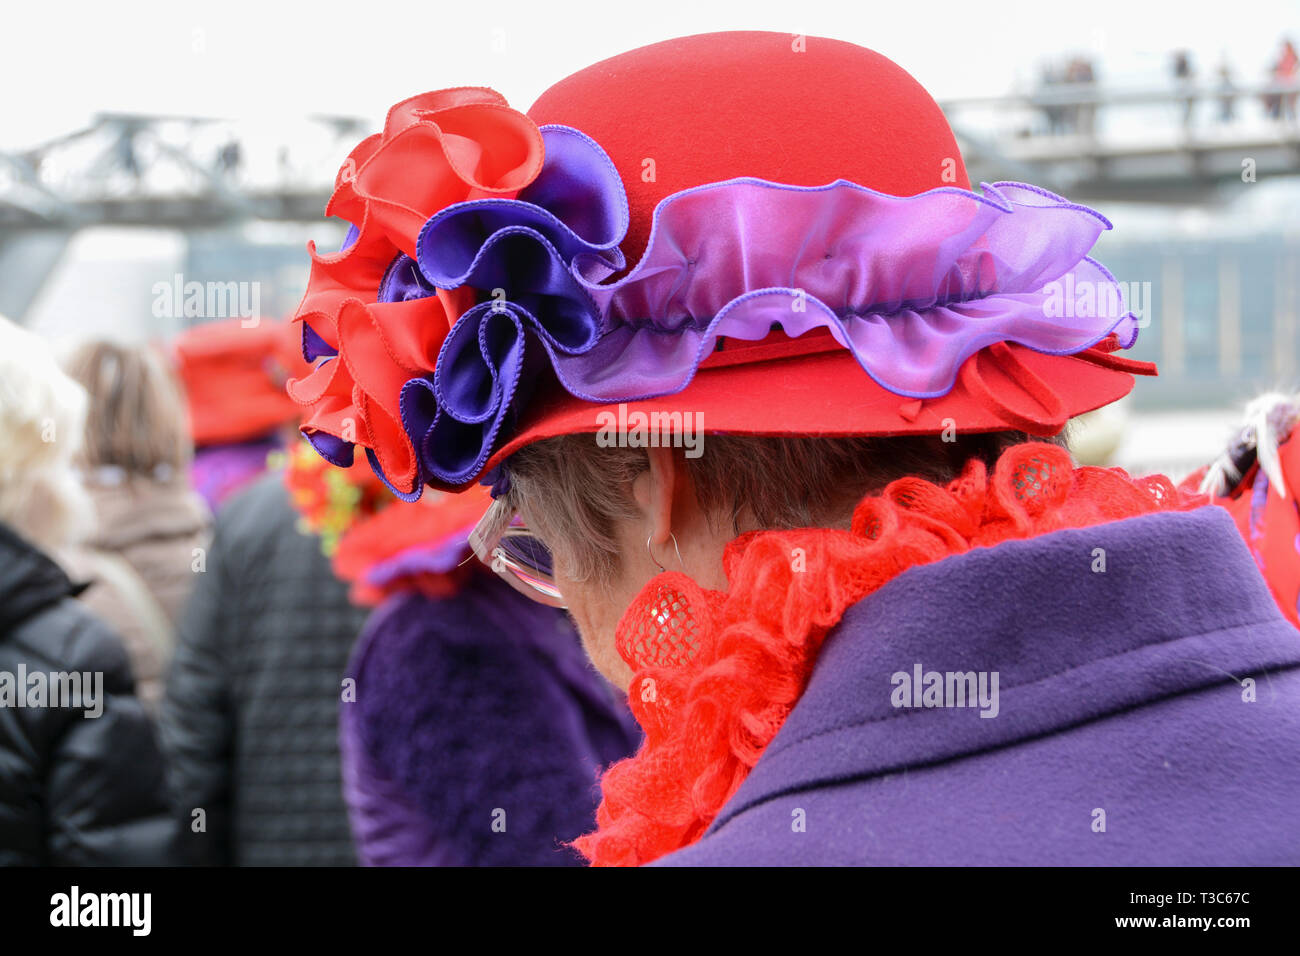 Millinery on display as part of London Hat Walk from the Tate Modern to Tower Bridge, London, UK - Stock Image